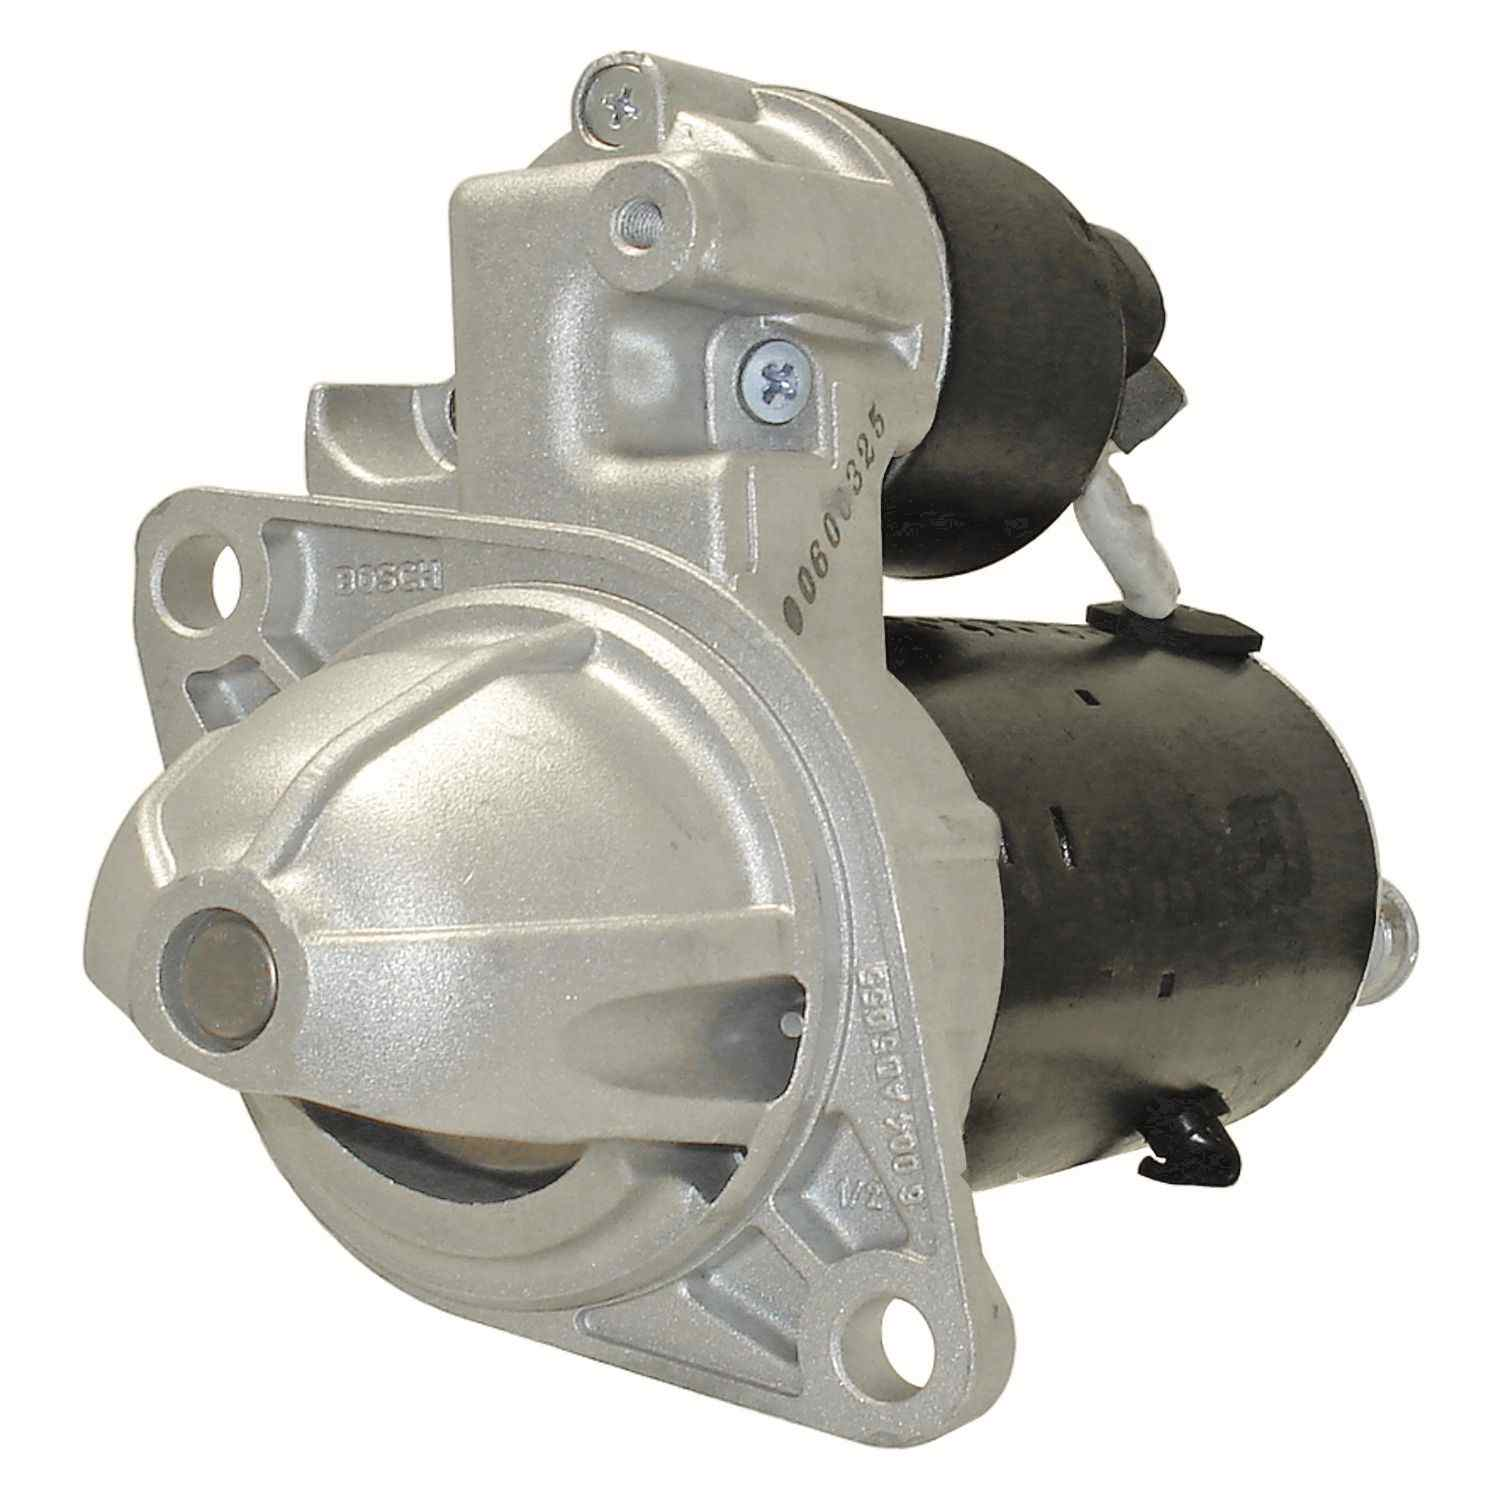 ACDELCO GOLD/PROFESSIONAL - Reman Starter Motor - DCC 336-1780